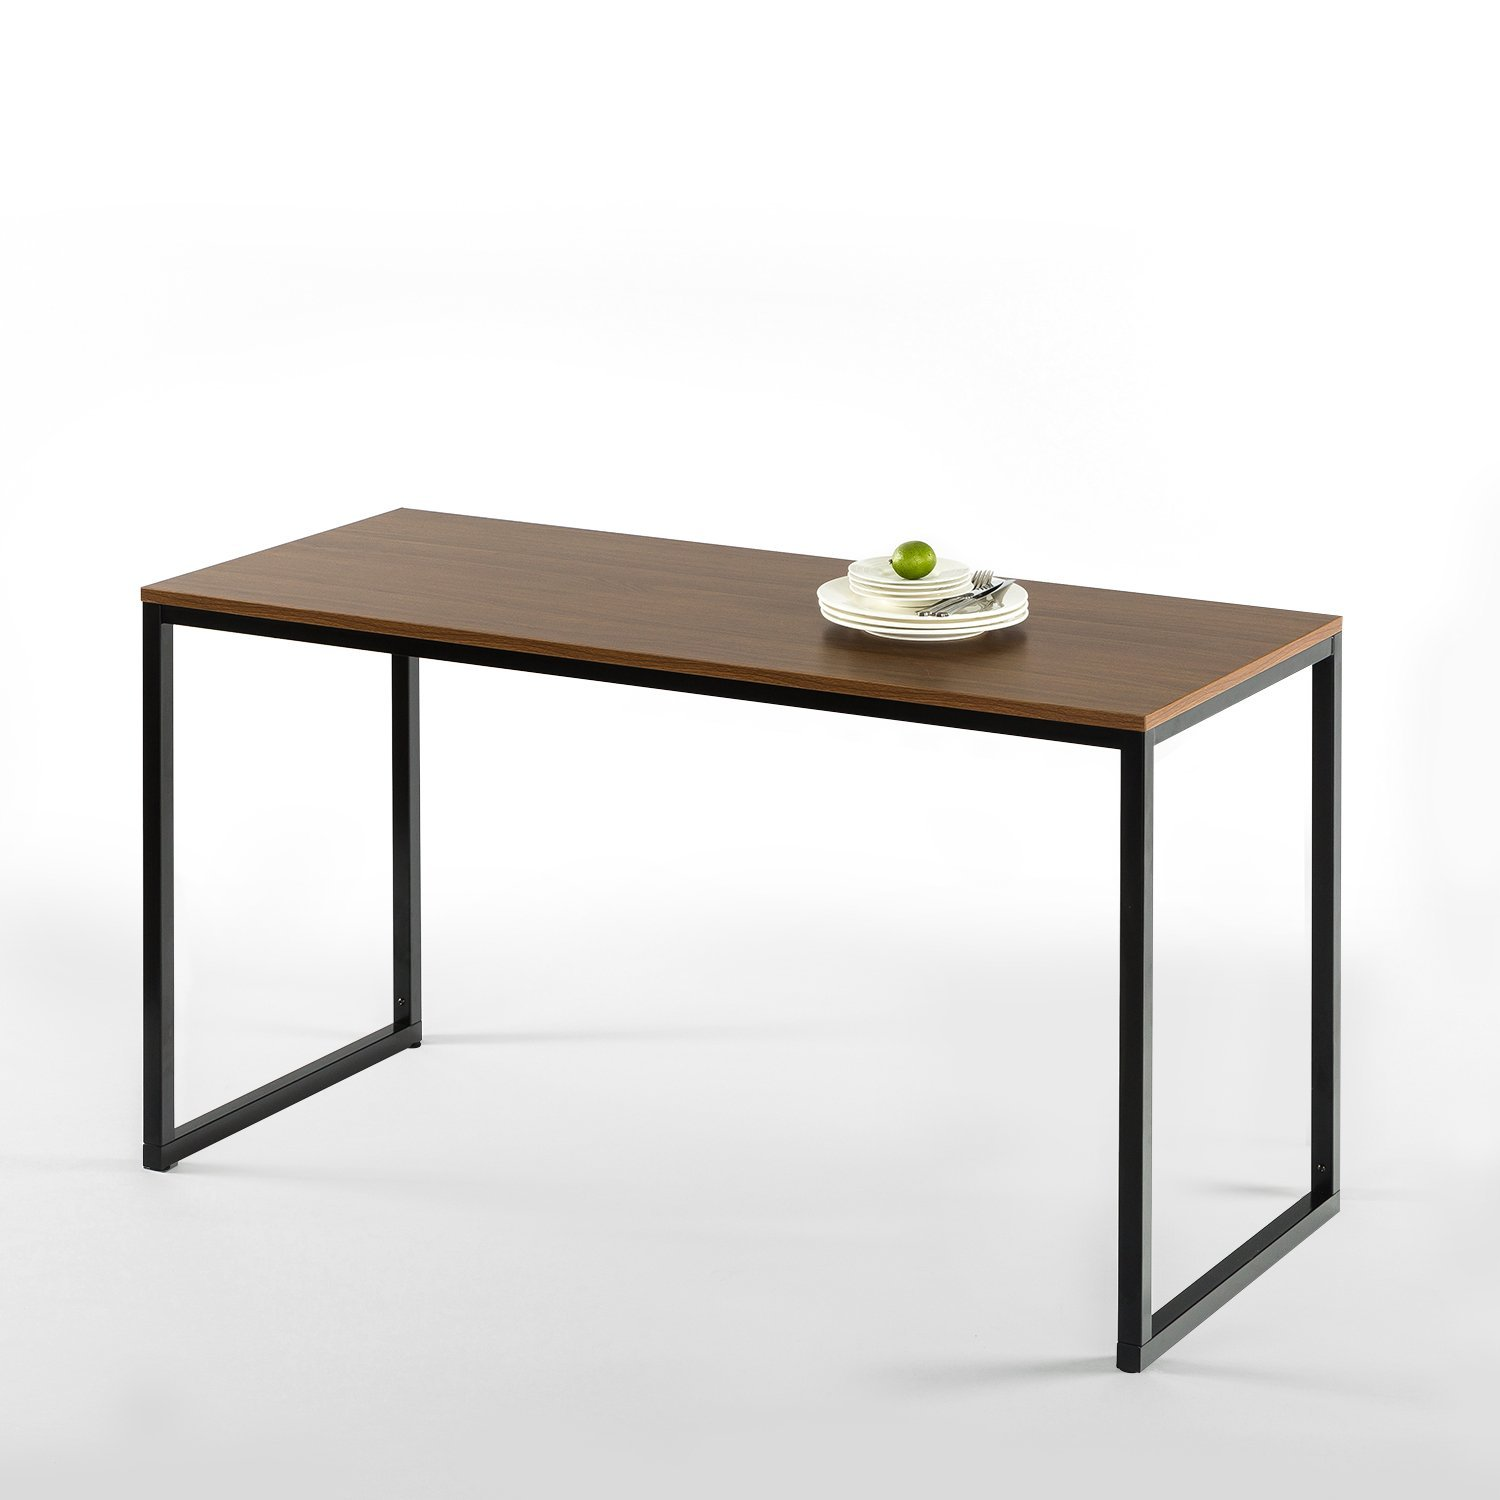 Zinus Modern Studio Collection Soho Rectangular Dining Table / Table Only /Office Desk / Computer Table by Zinus